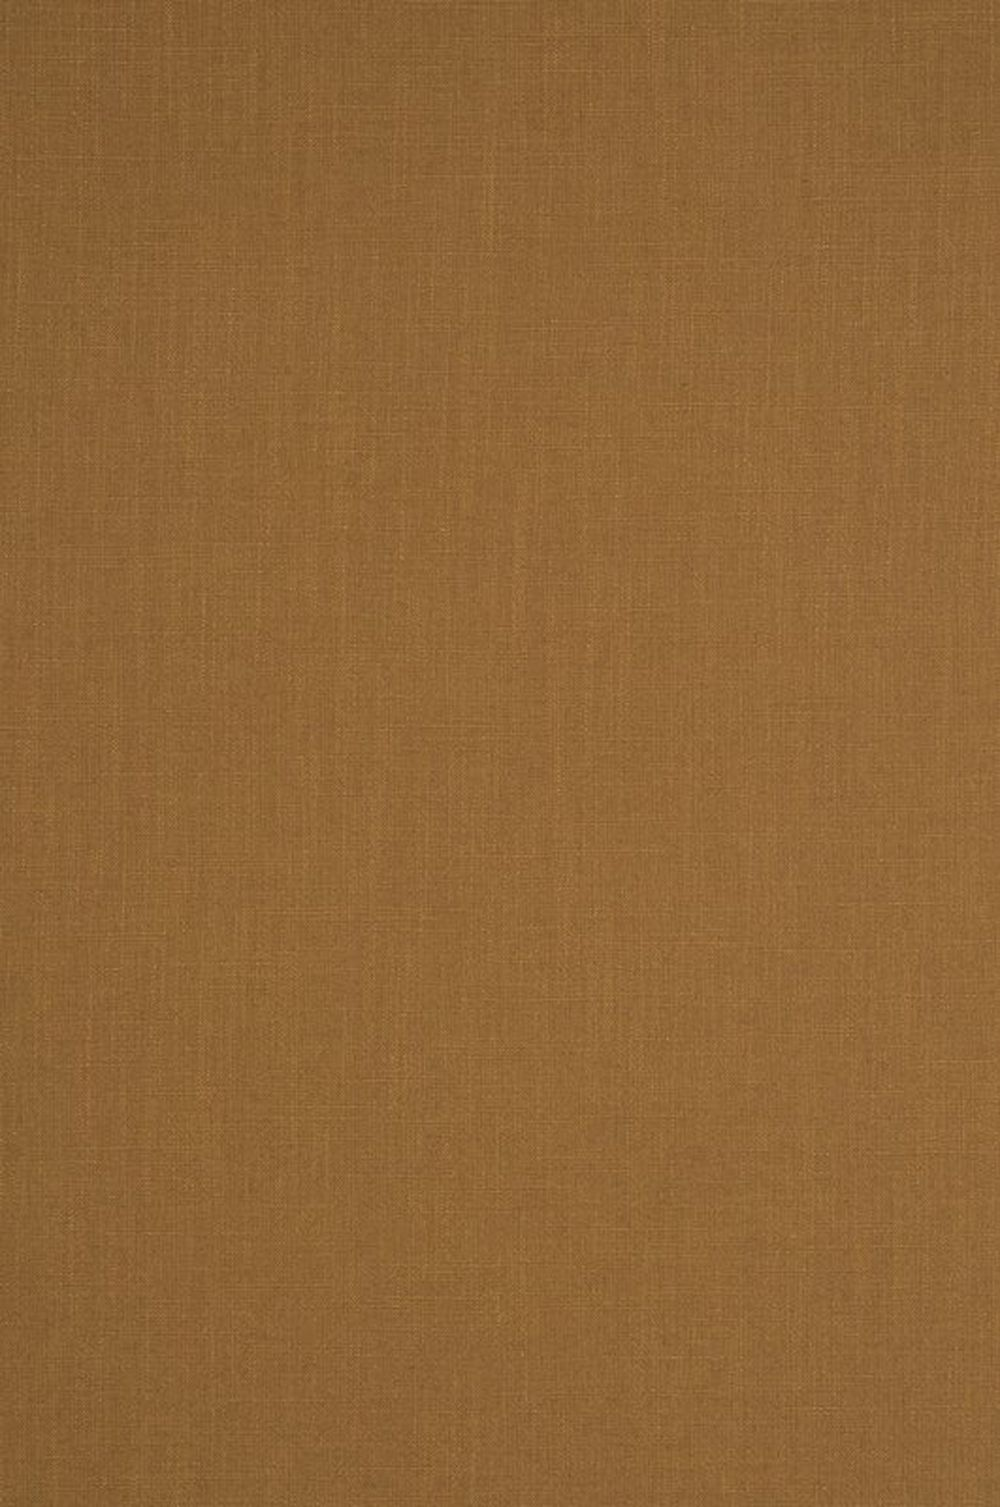 Photo of the fabric Soho Dijon swatch by James Dunlop. Use for Curtains, Upholstery Heavy Duty, Accessory. Style of Plain